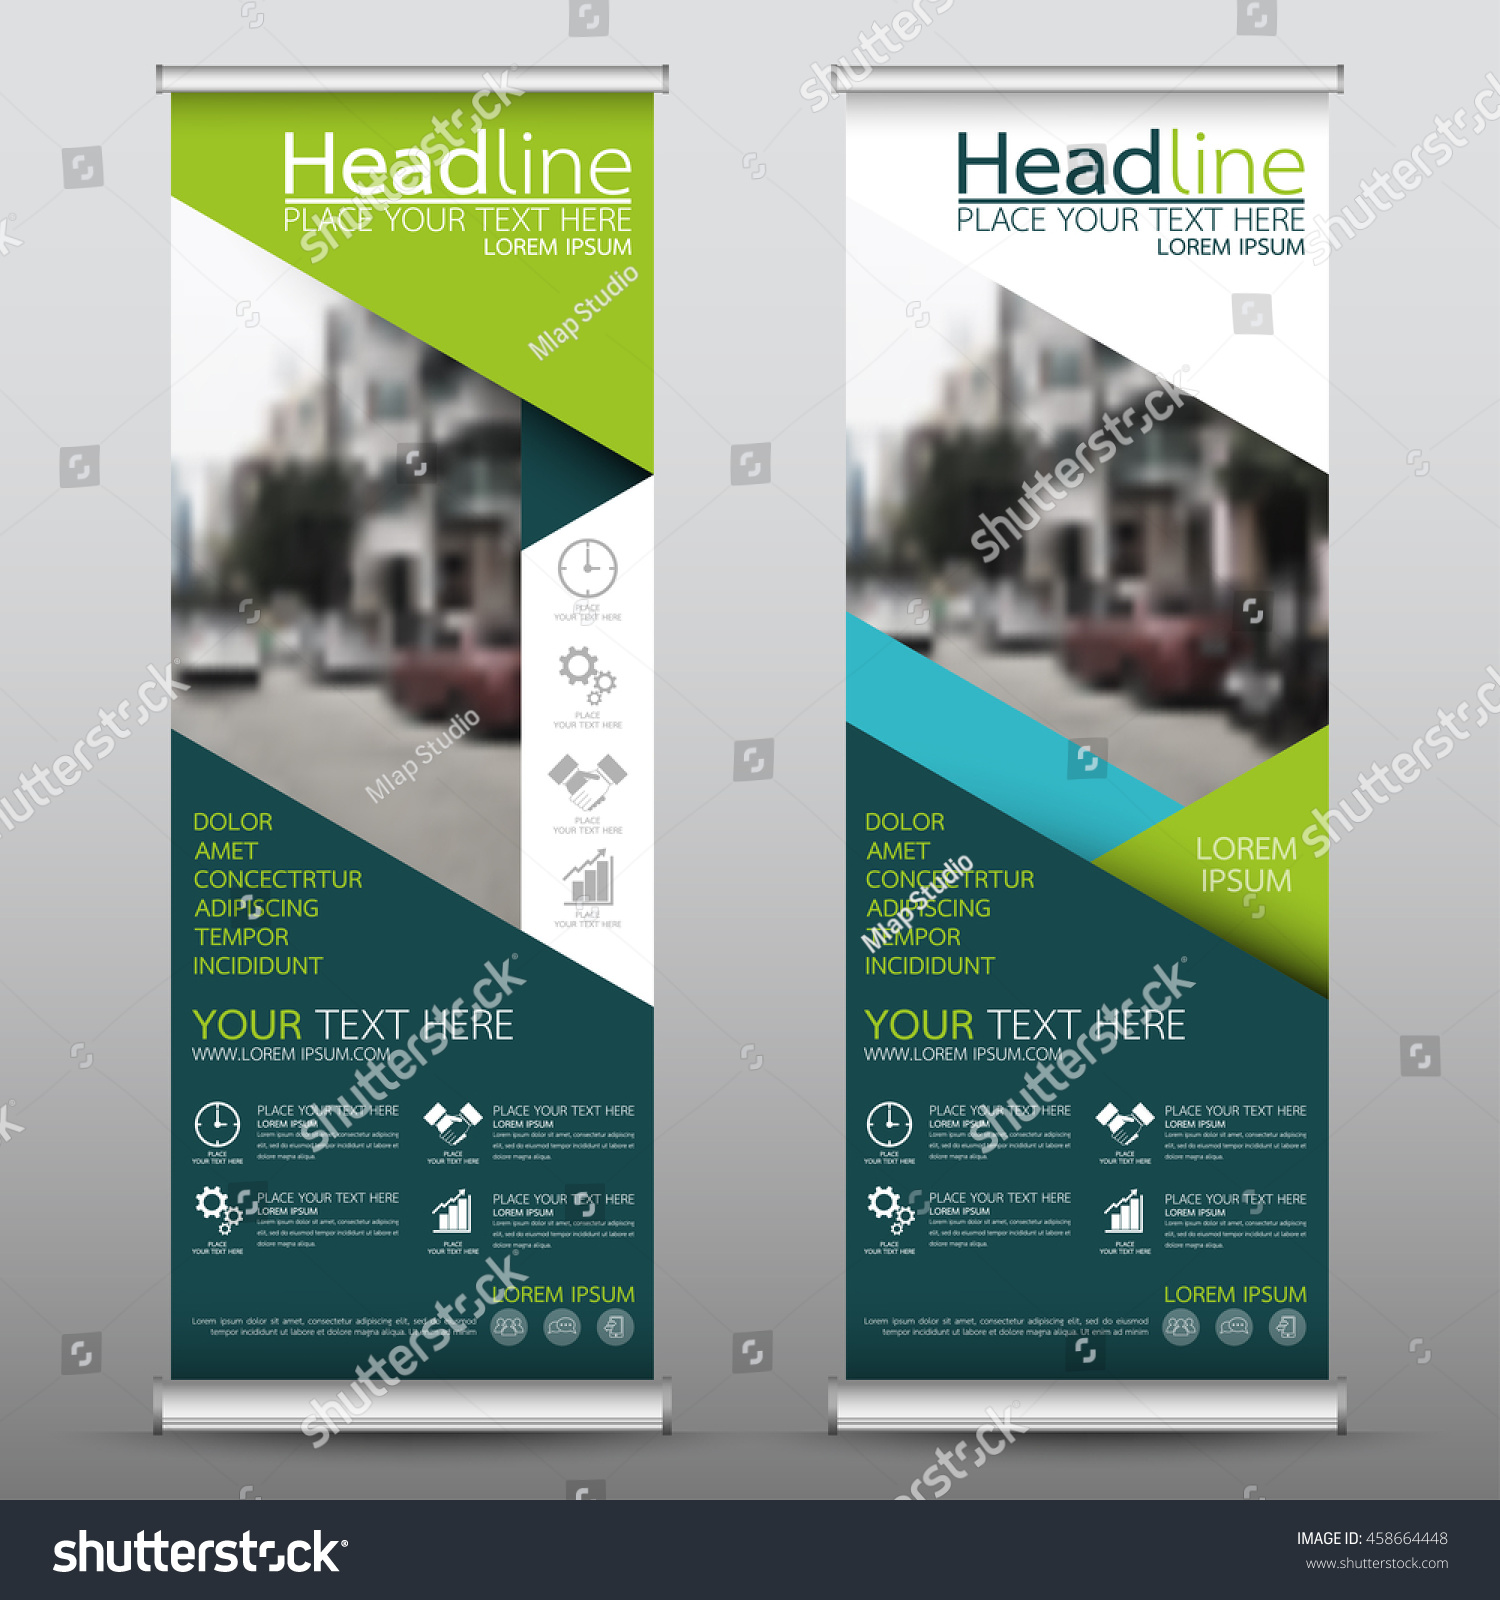 Green roll up business brochure flyer banner design vertical template - Green And Blue Roll Up Business Banner Design Vertical Template Vector Cover Presentation Abstract Geometric